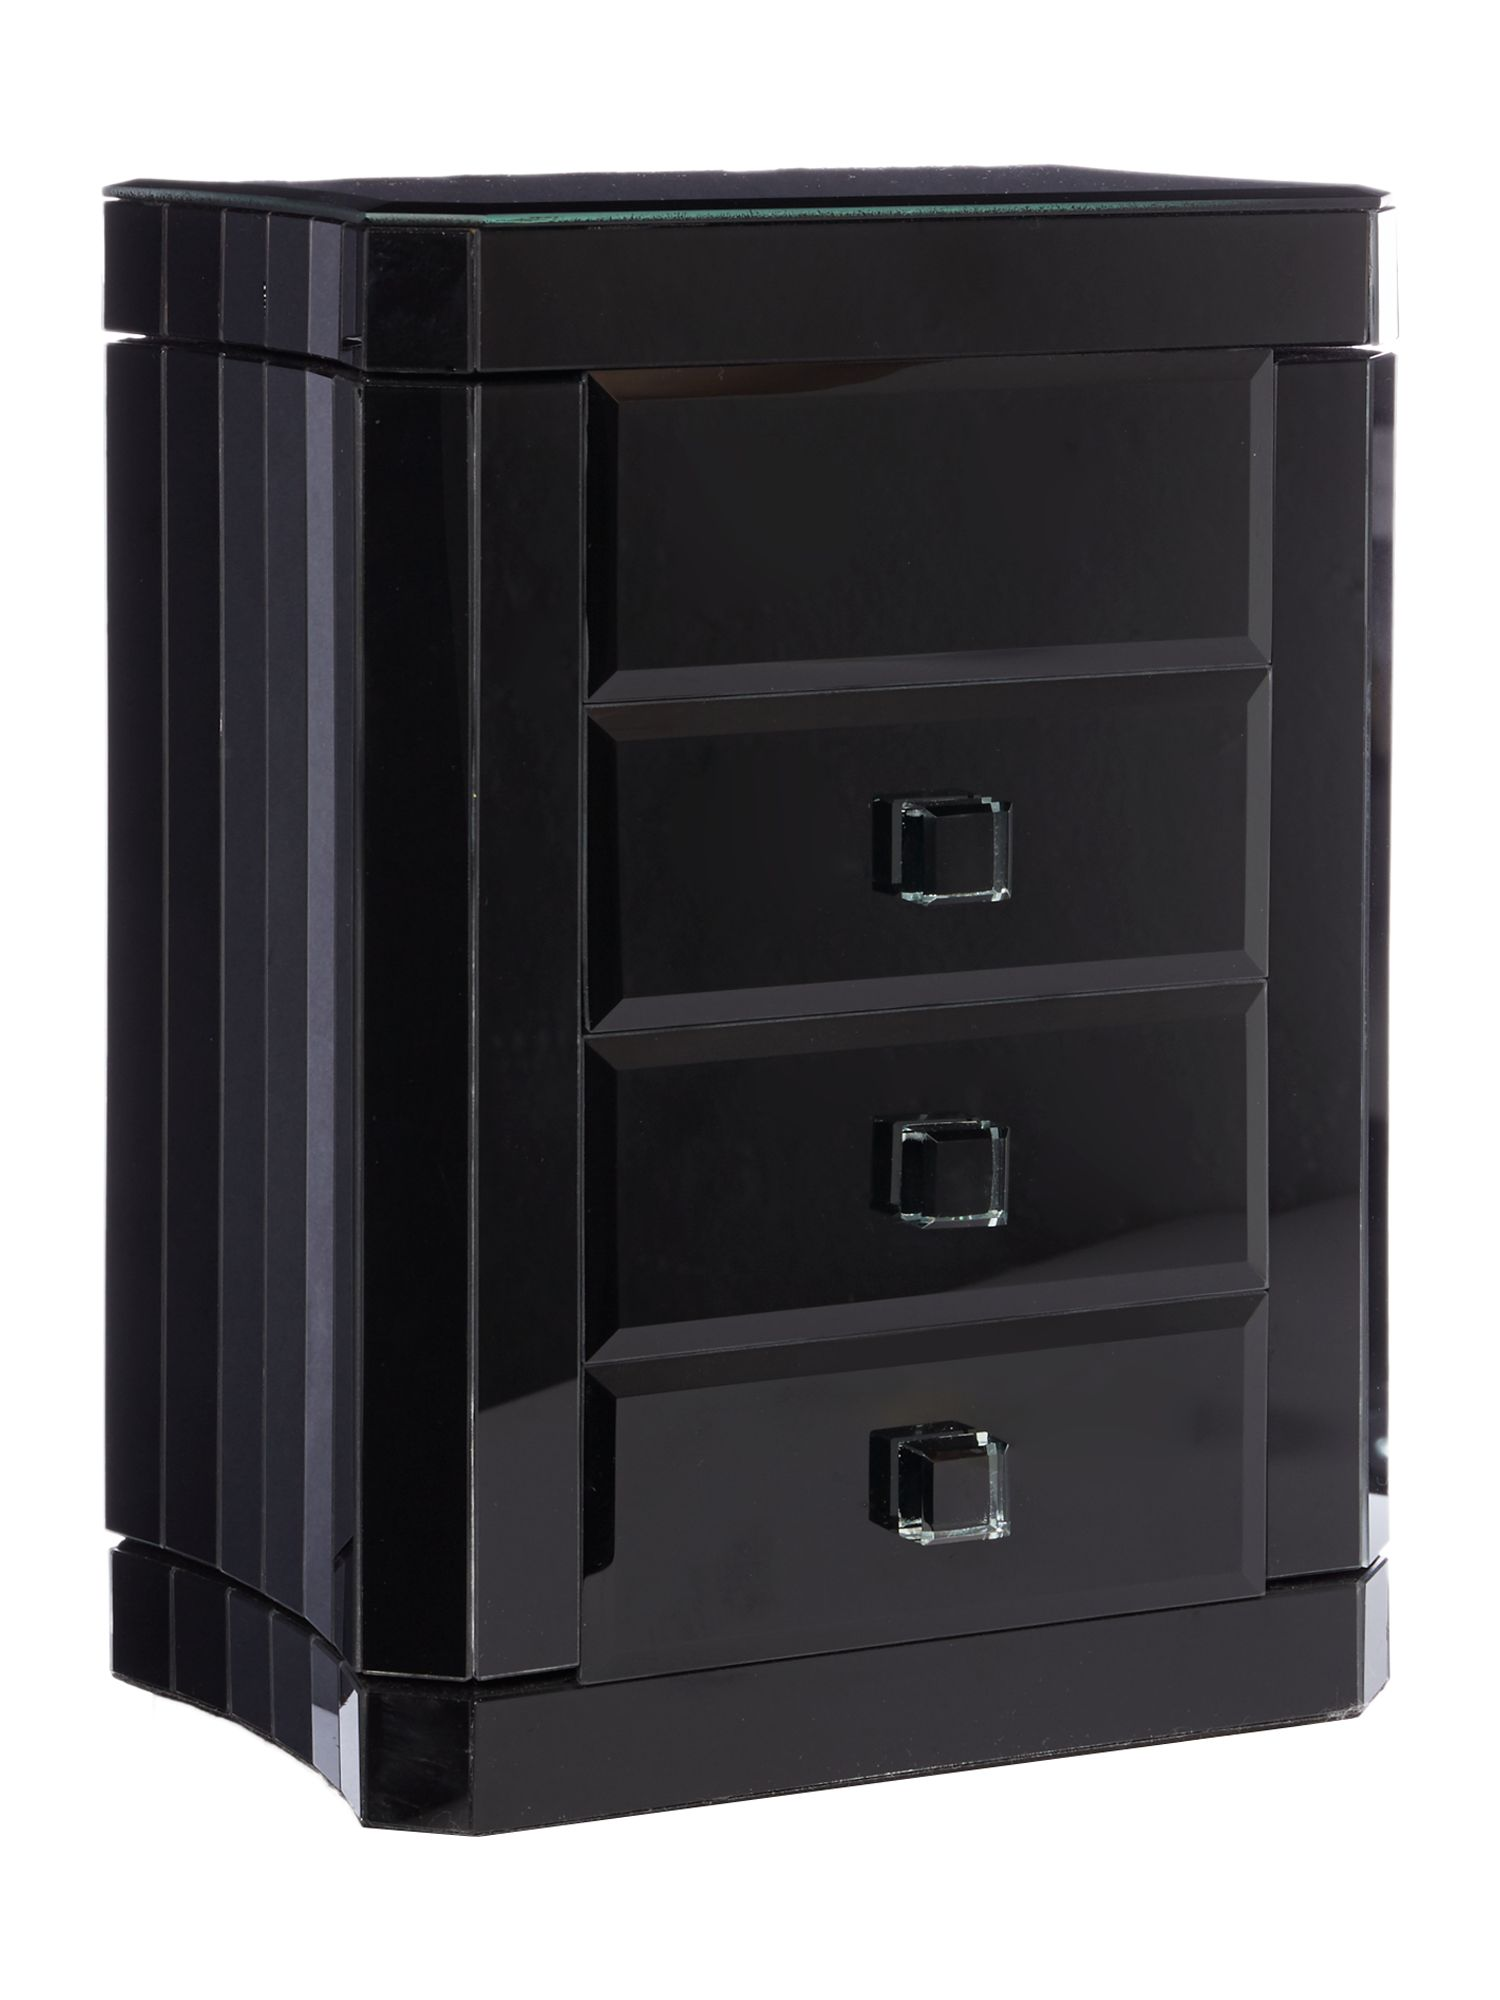 Jewellery Cabinet Uk Jewellery Boxes Jewellery Stands House Of Fraser